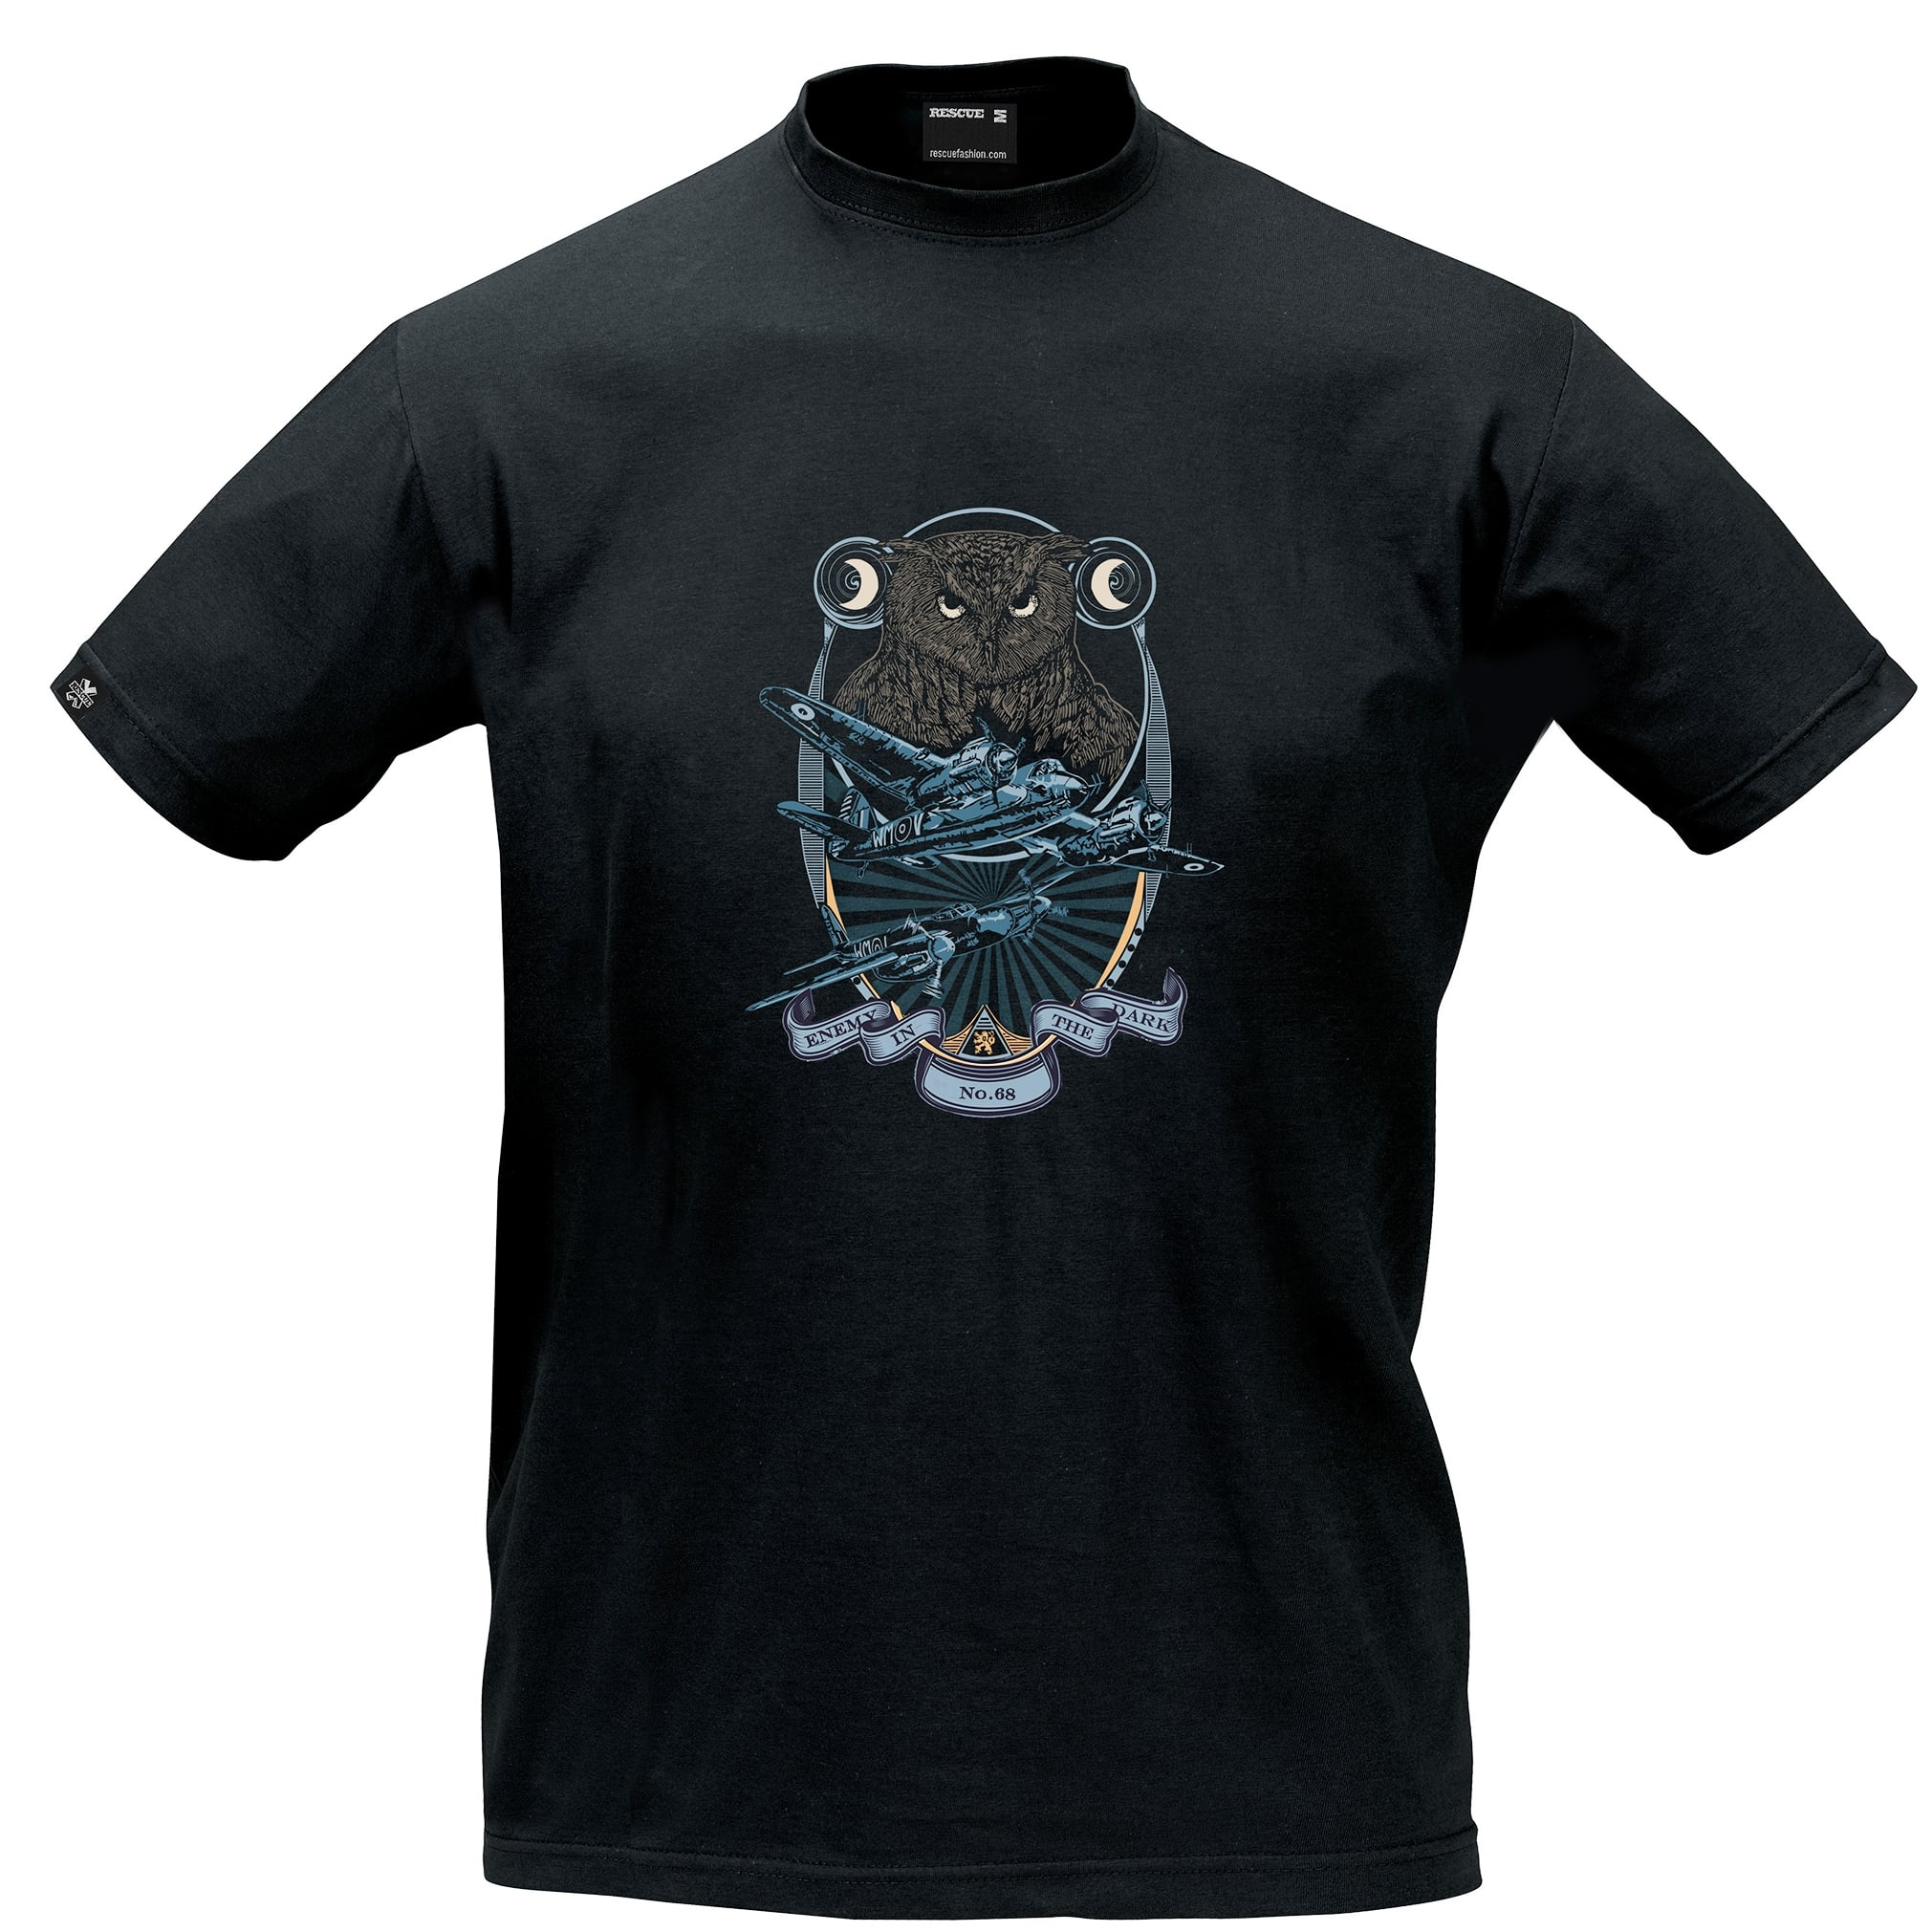 68 Night Fighter Squadron T-Shirt